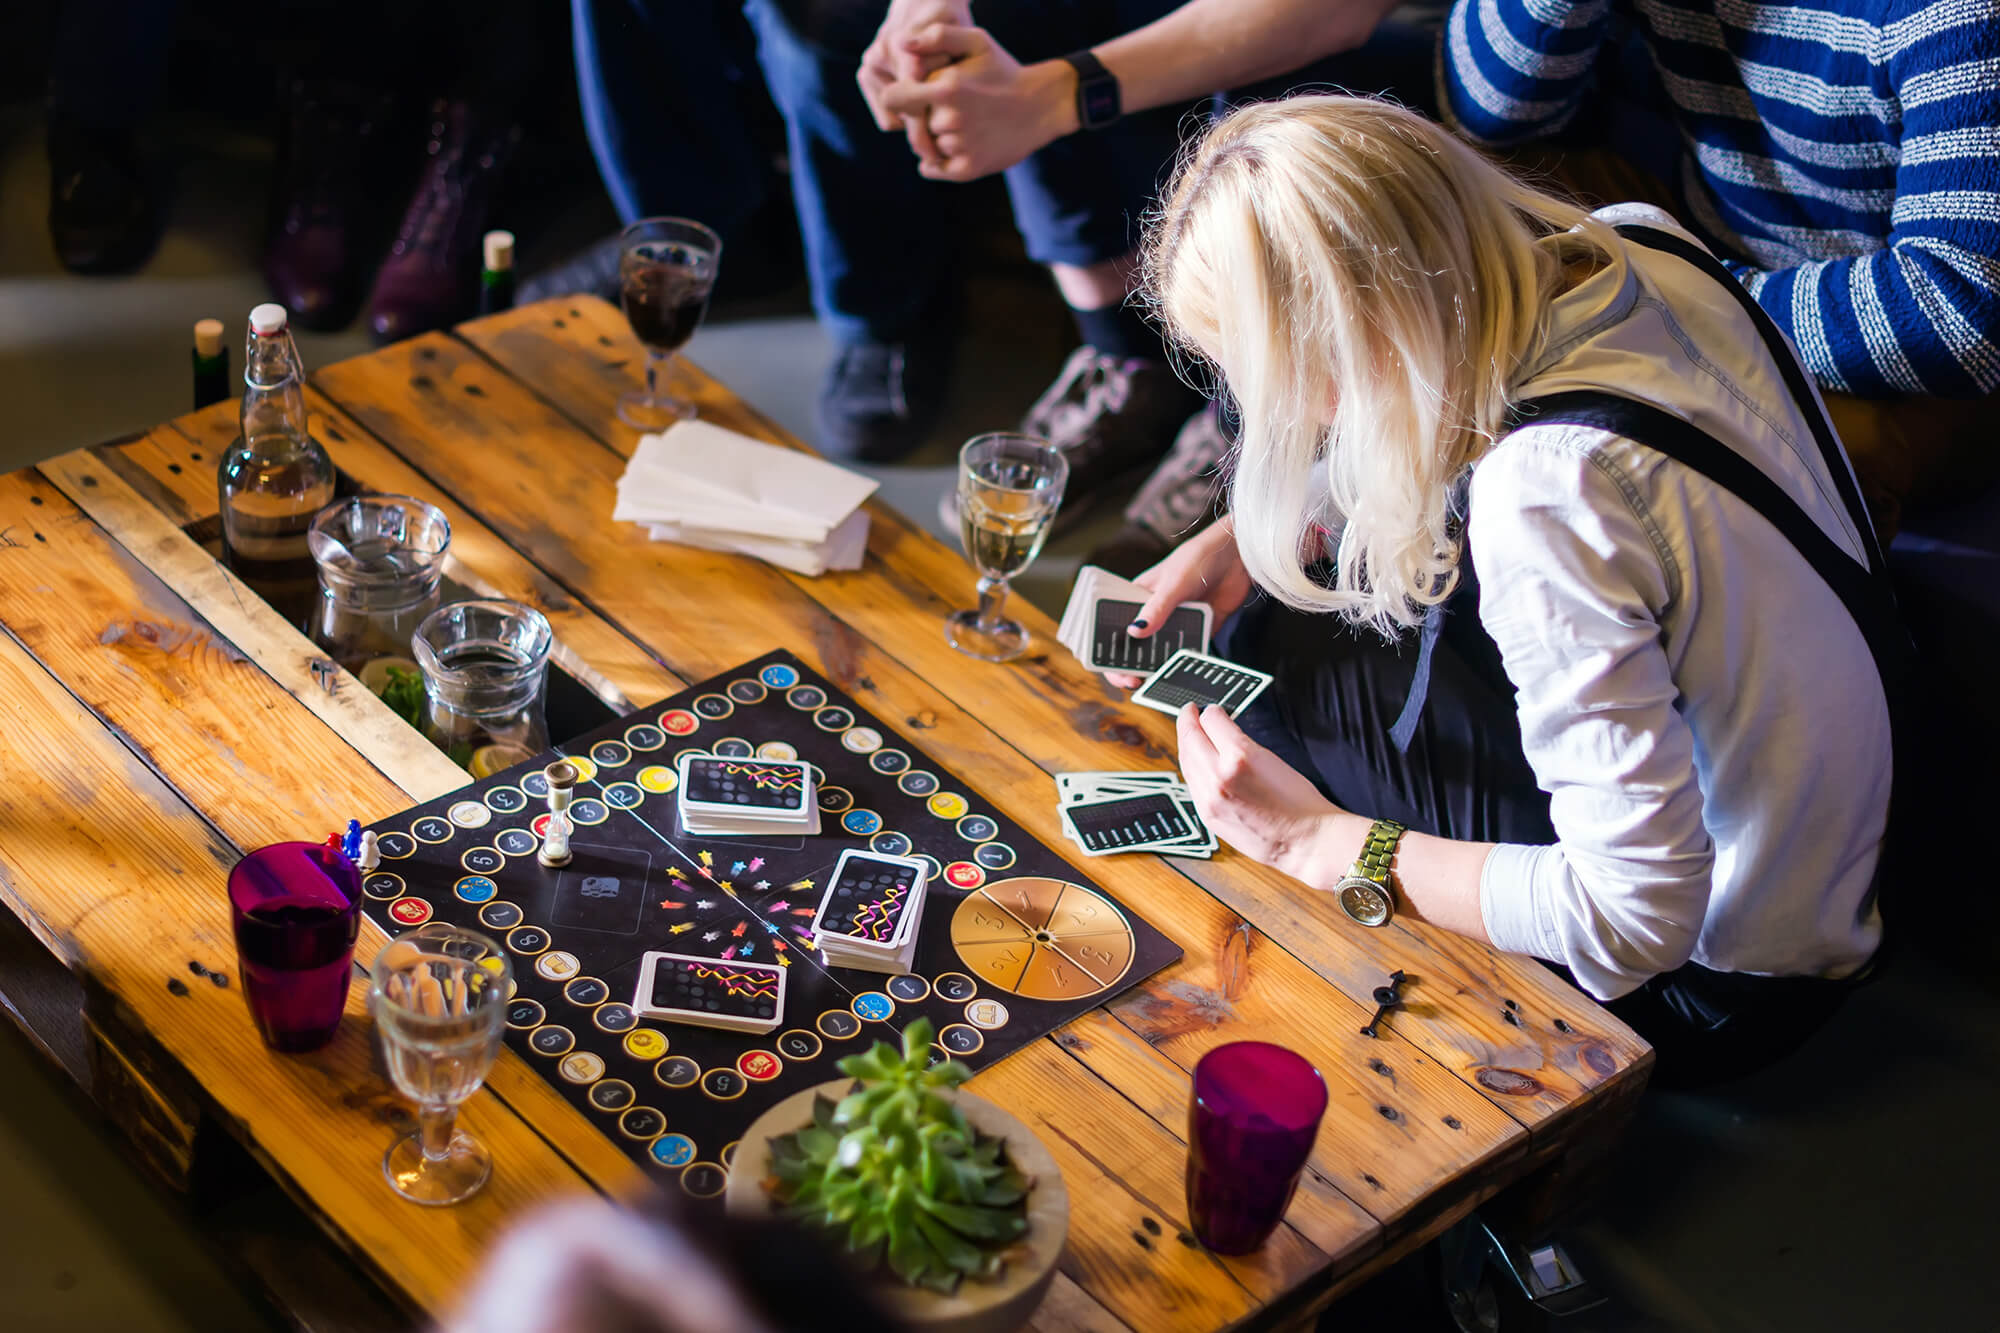 People playing board games